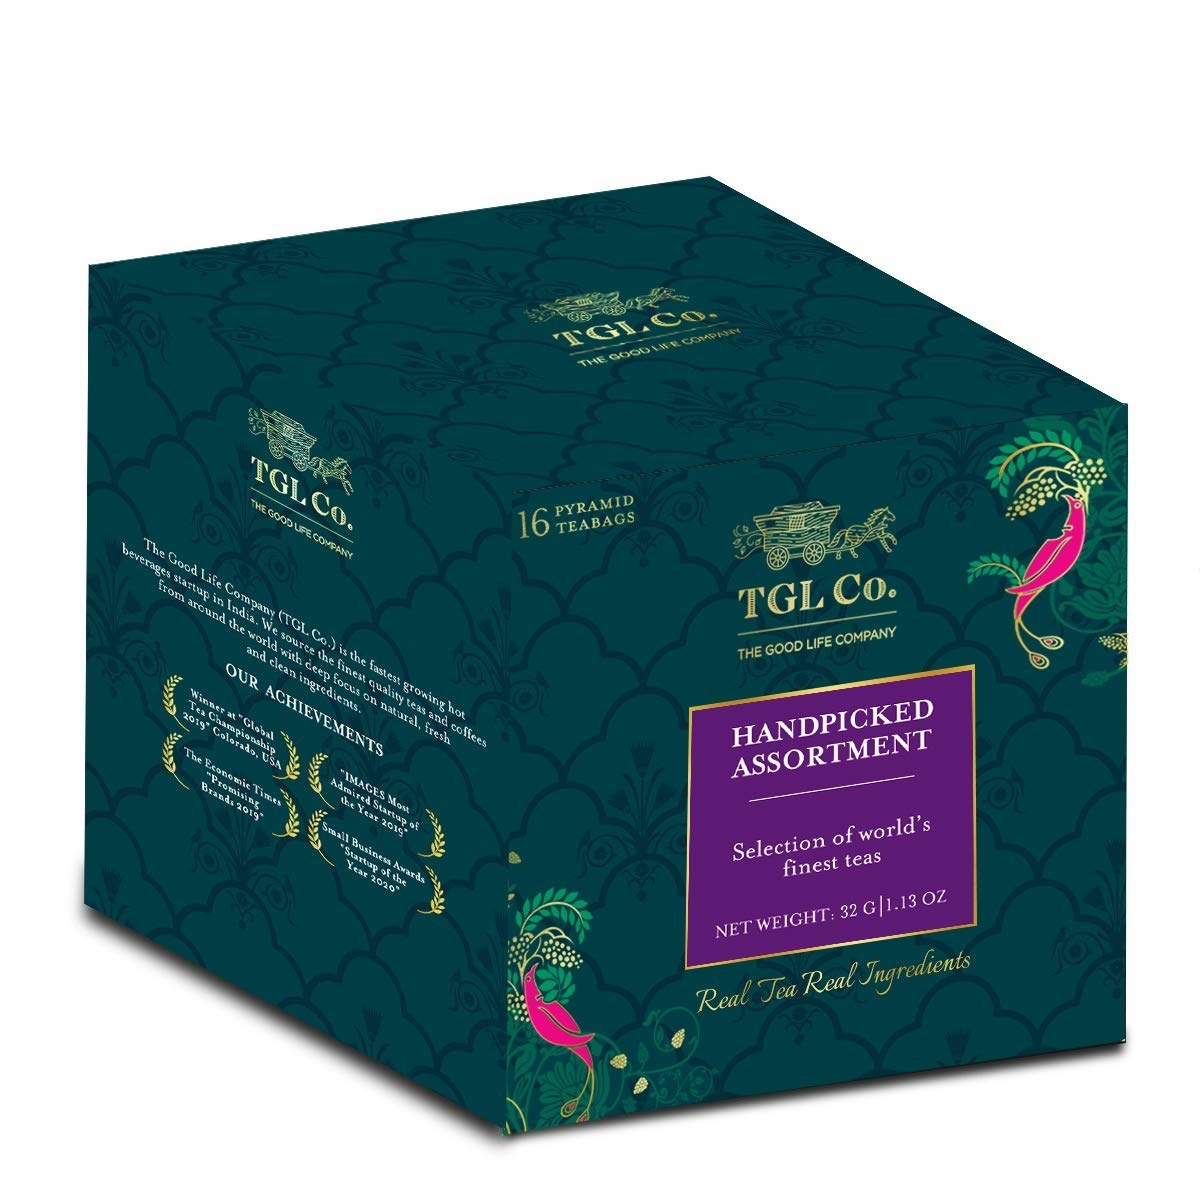 Packaging of the assorted green tea box